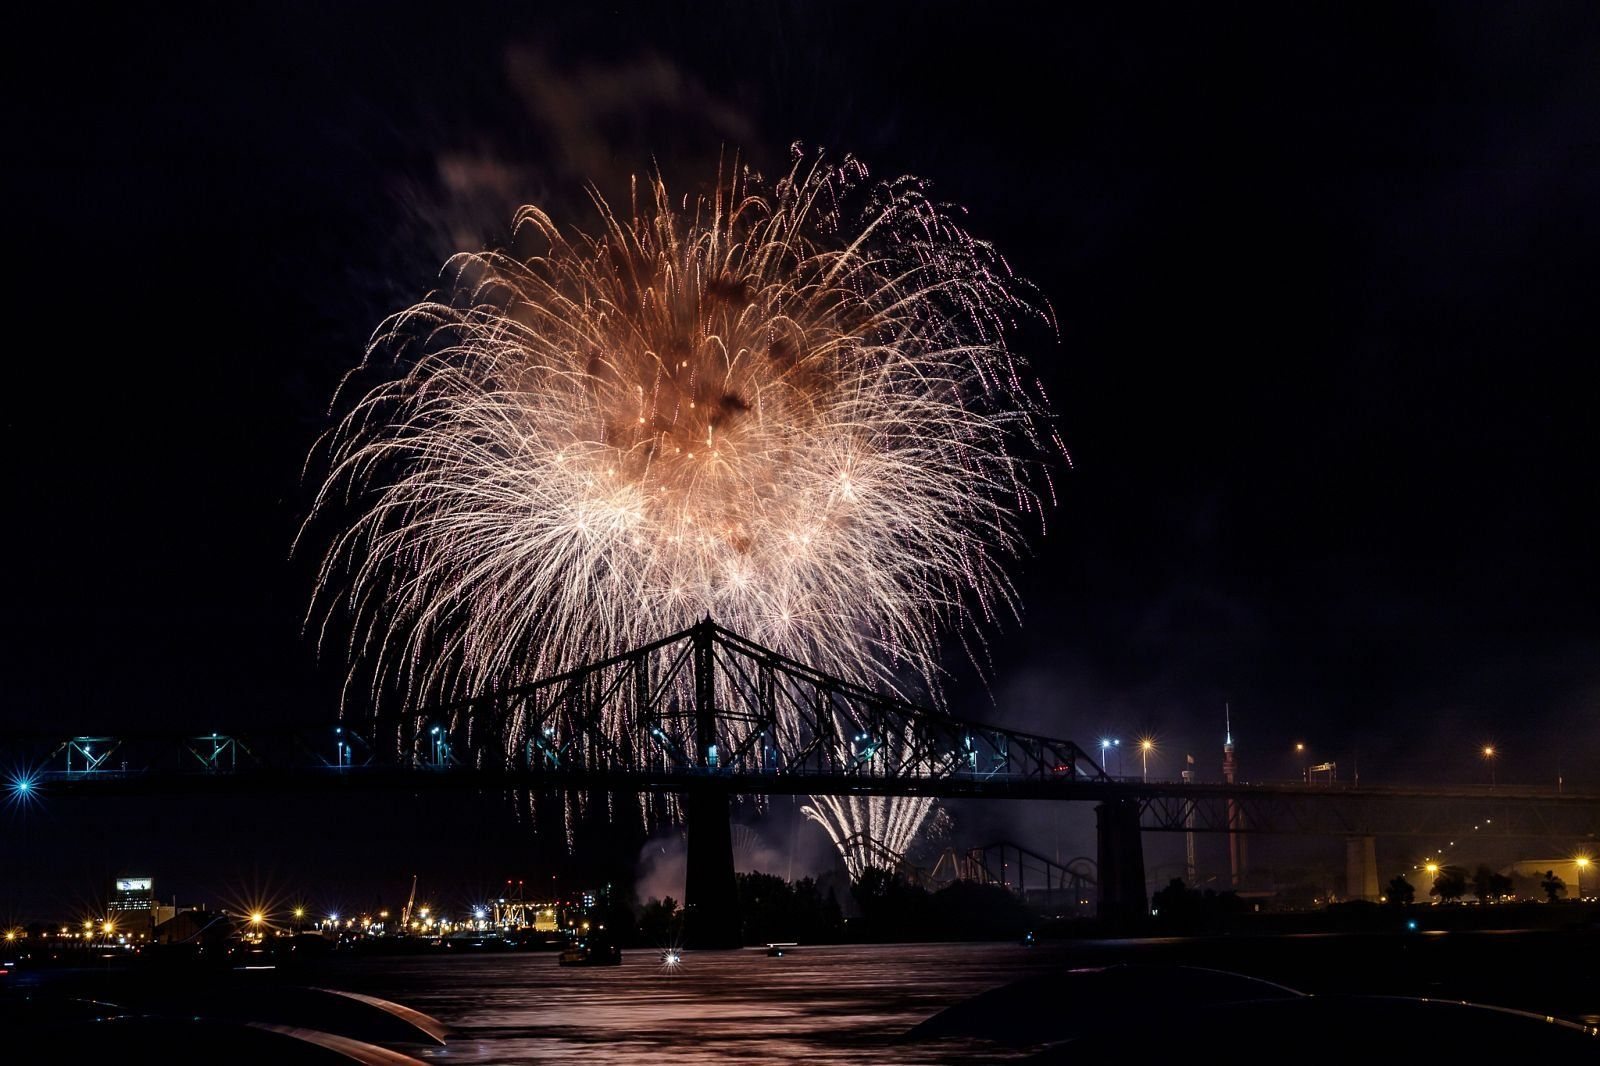 montreal_fireworks_competition_201722_1100.jpg